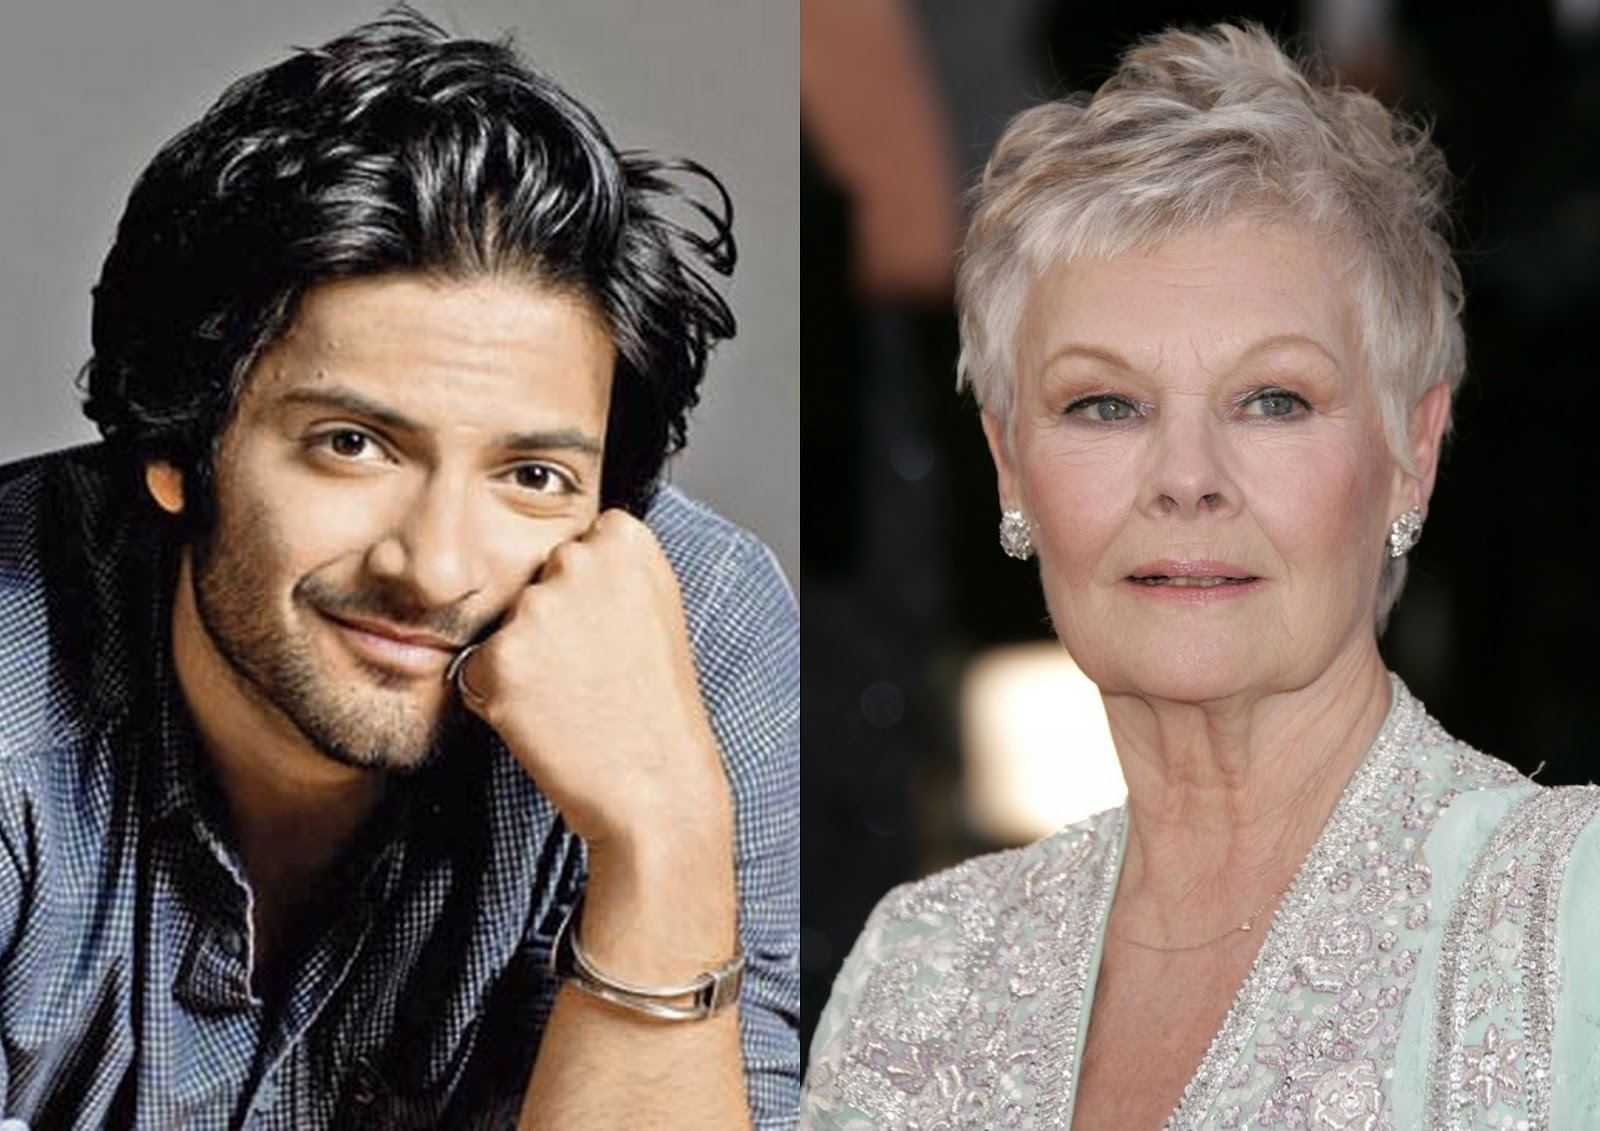 Ali, Ali Fazal, Judi Dench, Queen, SUICIDE GUY, Fast and Furious 7, Victoria & Abdul, Abdul Karim, Queen Victoria